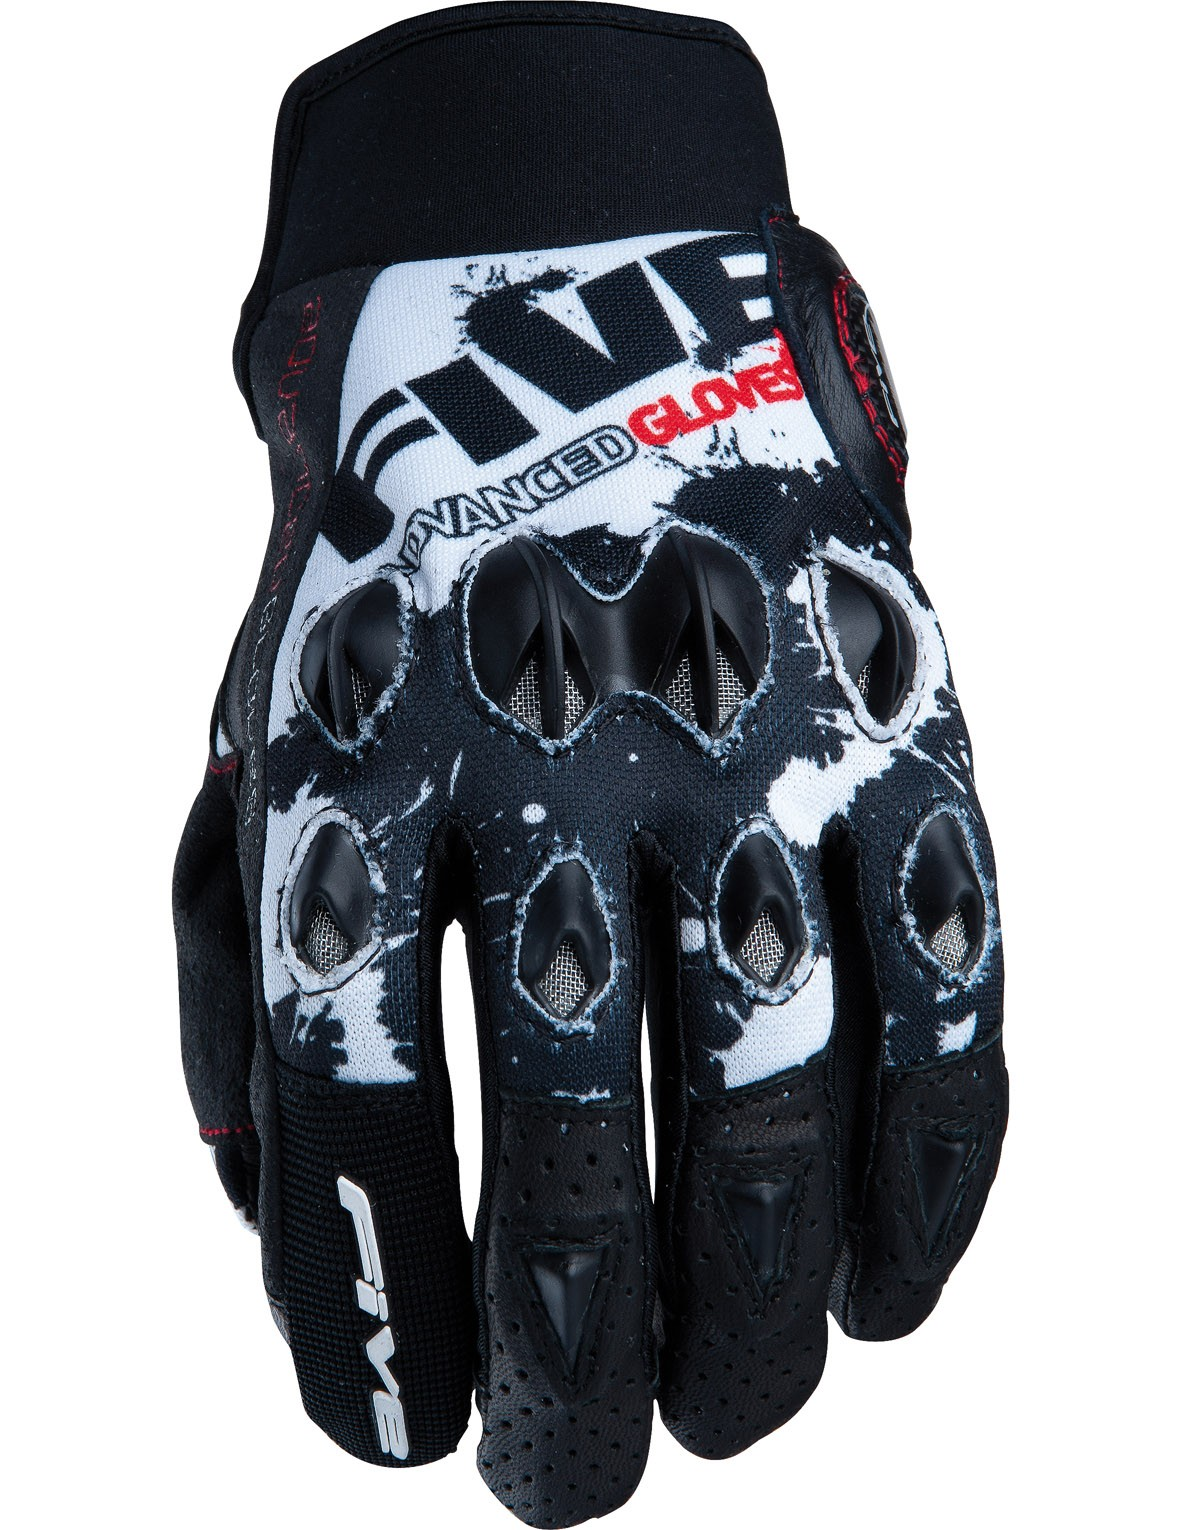 Перчатки FIVE, STUNT REPLICA Splash black/white XL